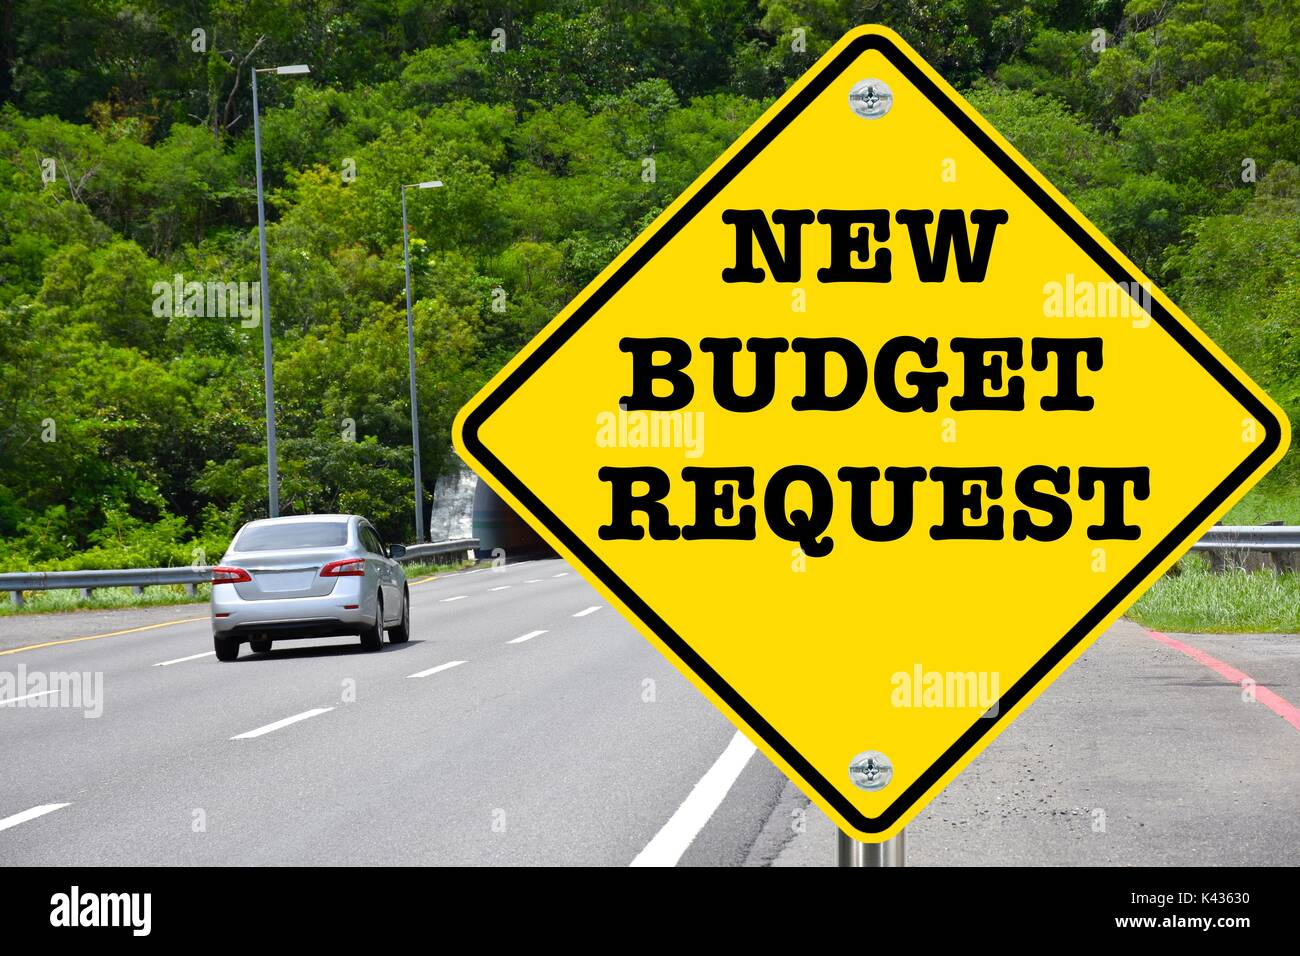 New budget request, yellow warning road sign Stock Photo